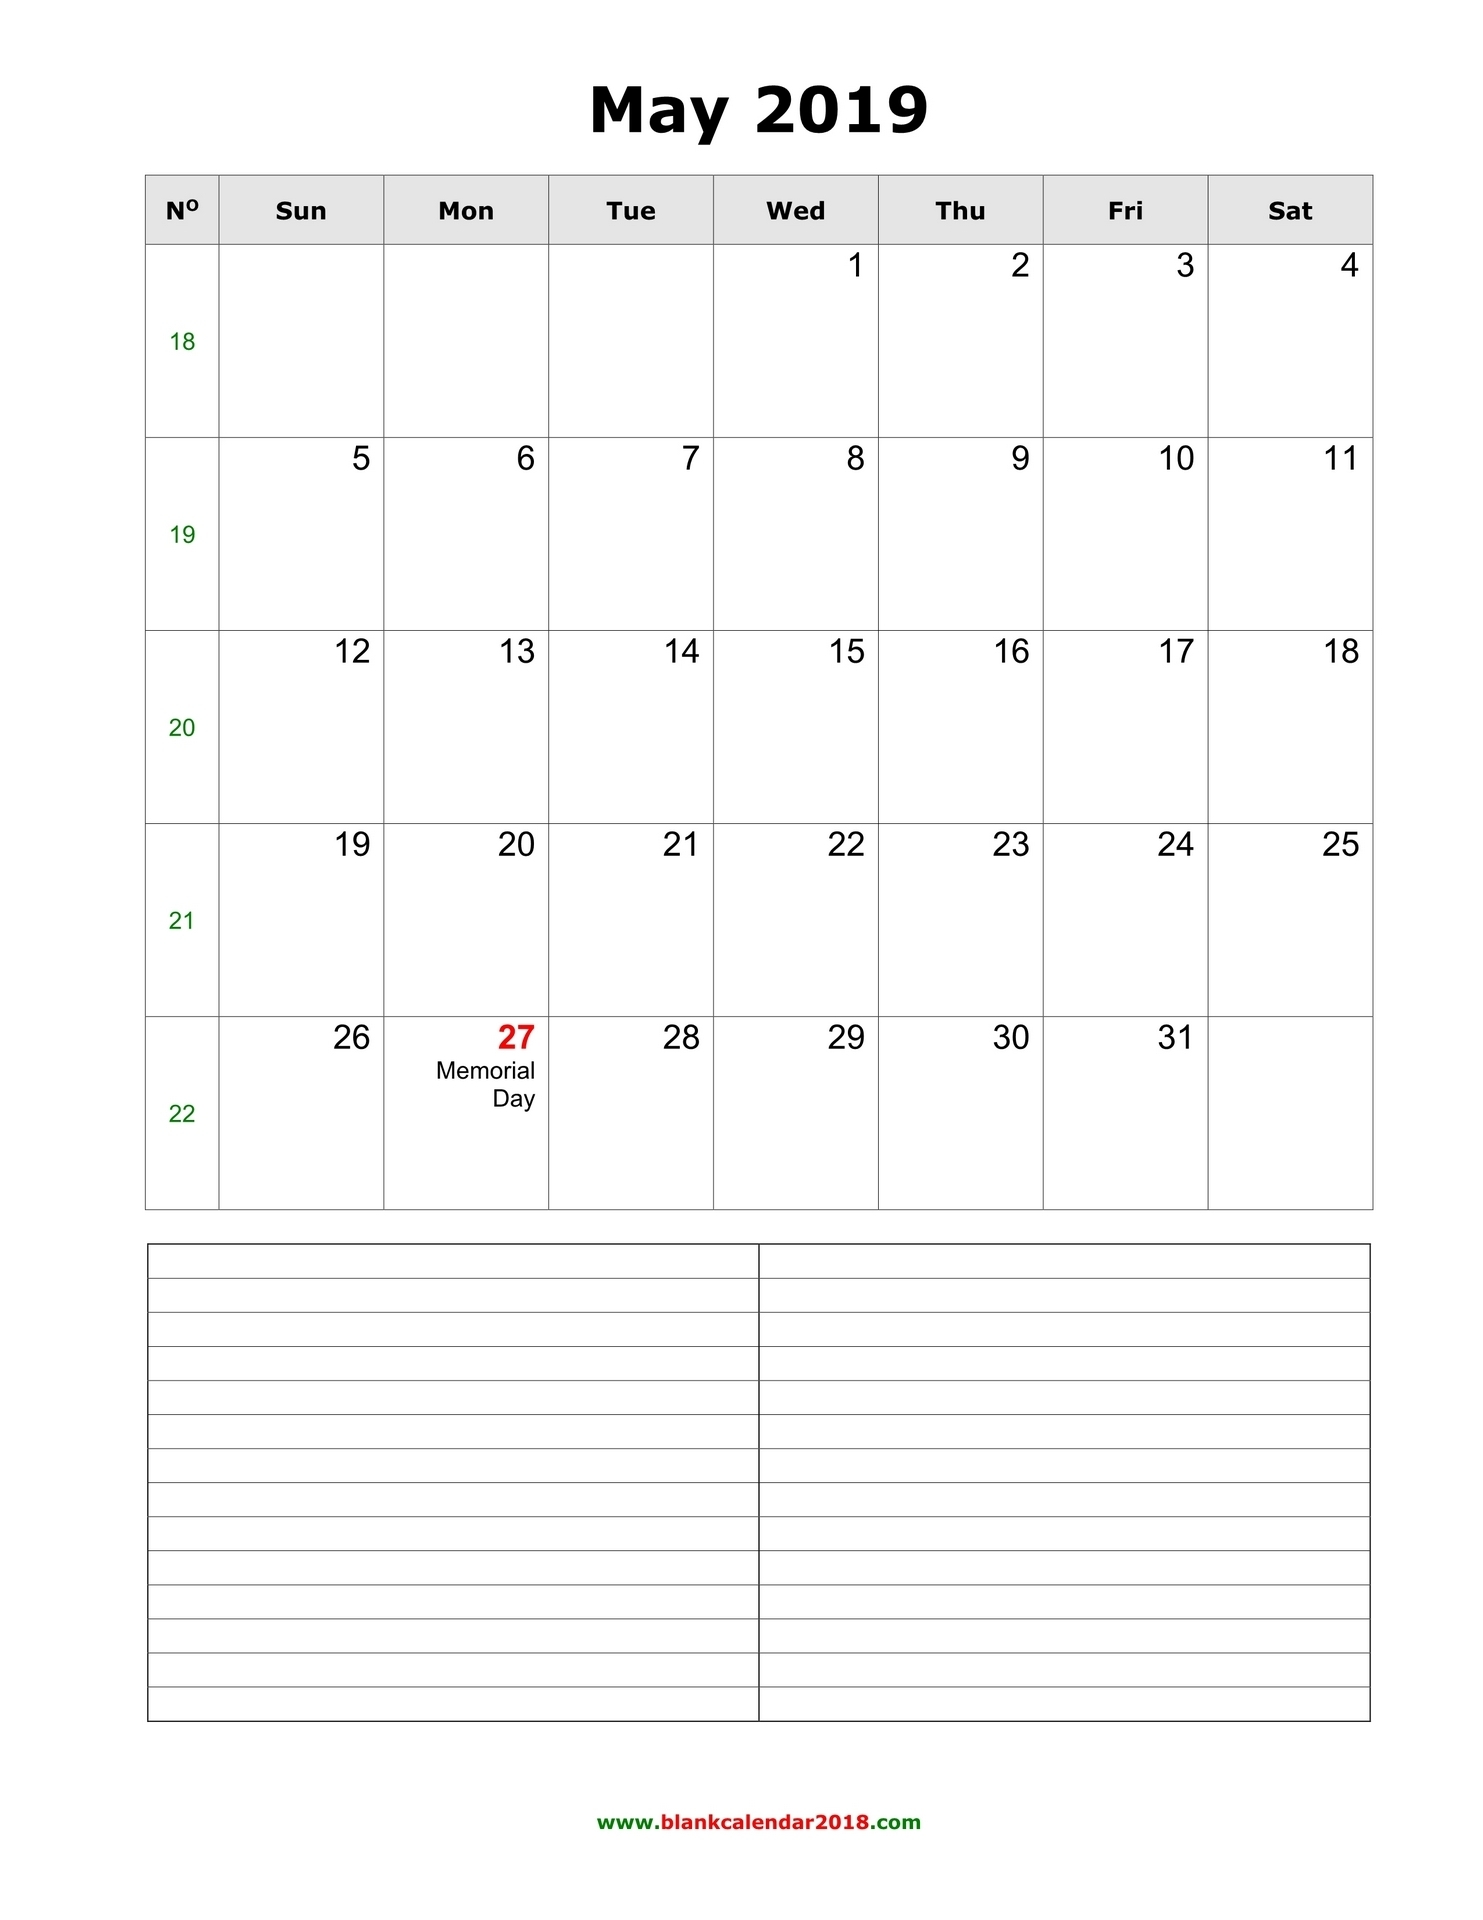 Blank Calendar For May 2019 in 2019 Calendar Downloadable Free Word